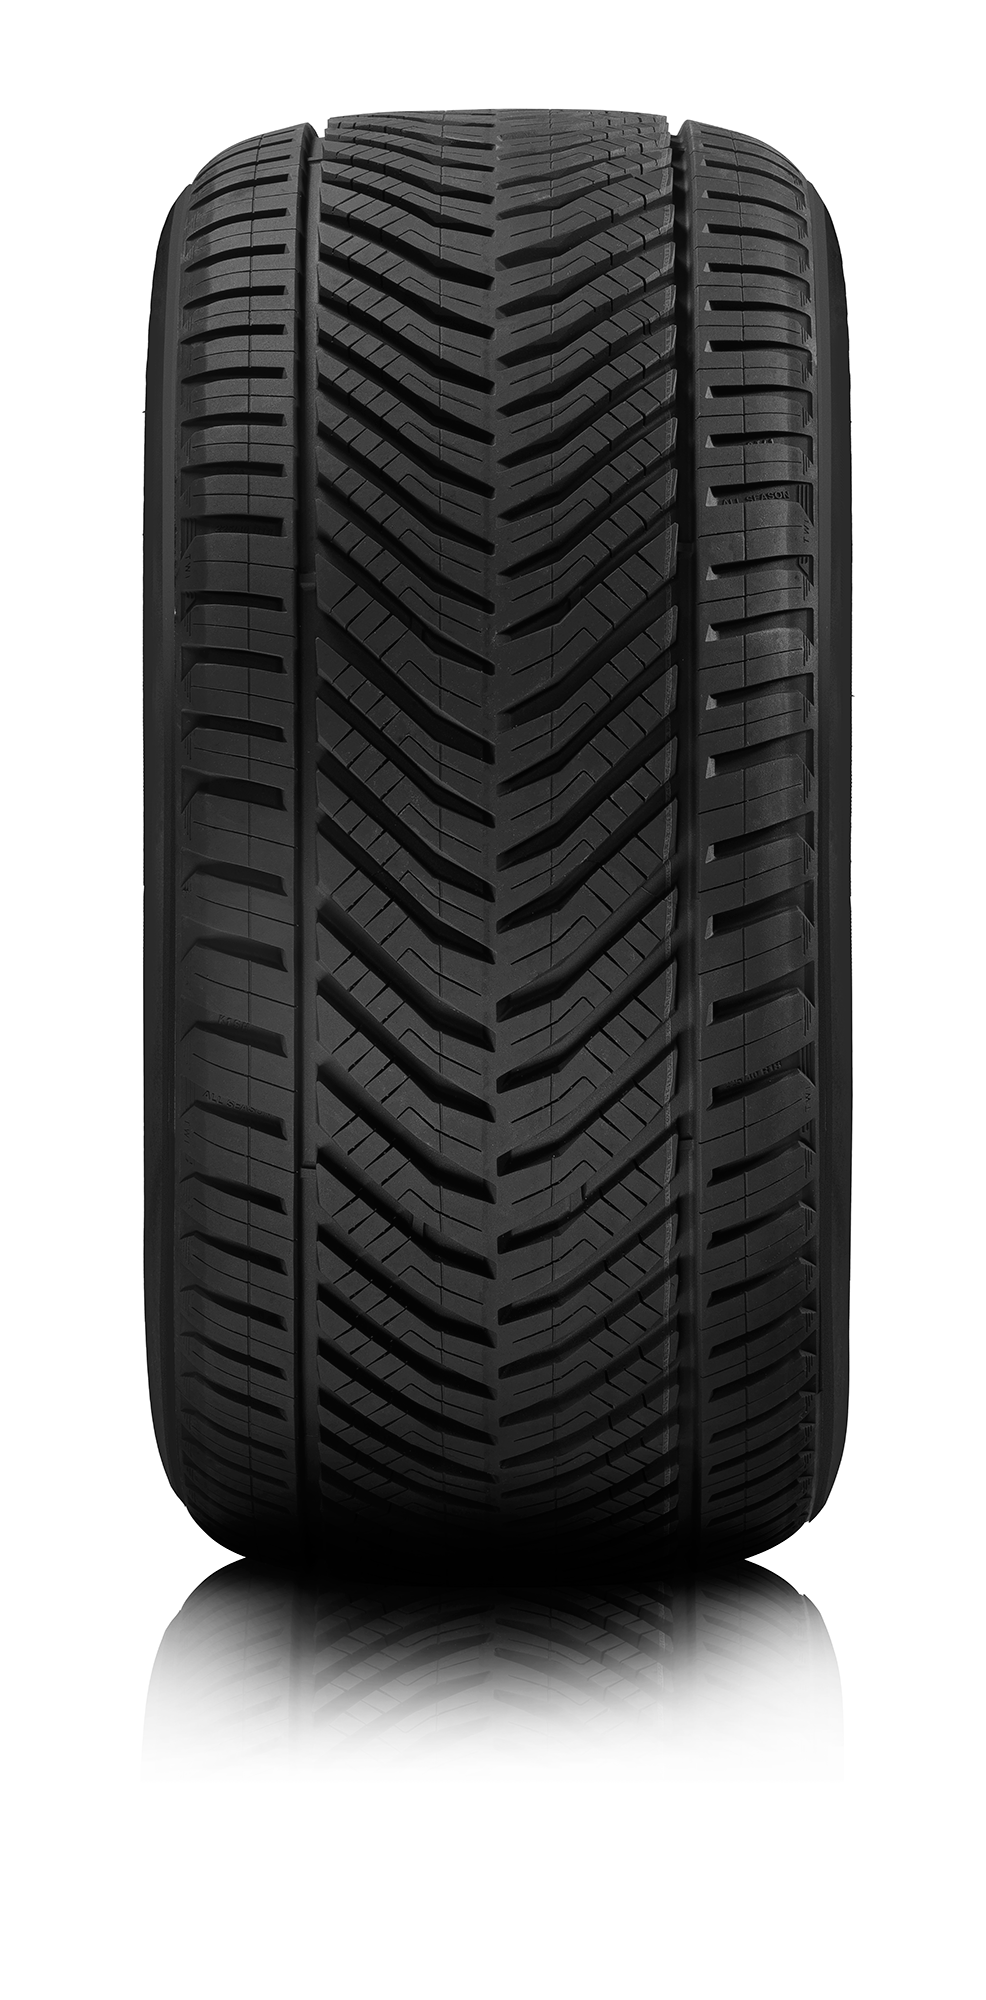 Gomme Nuove Orium 195/65 R15 95V ALL SEASON XL M+S pneumatici nuovi All Season